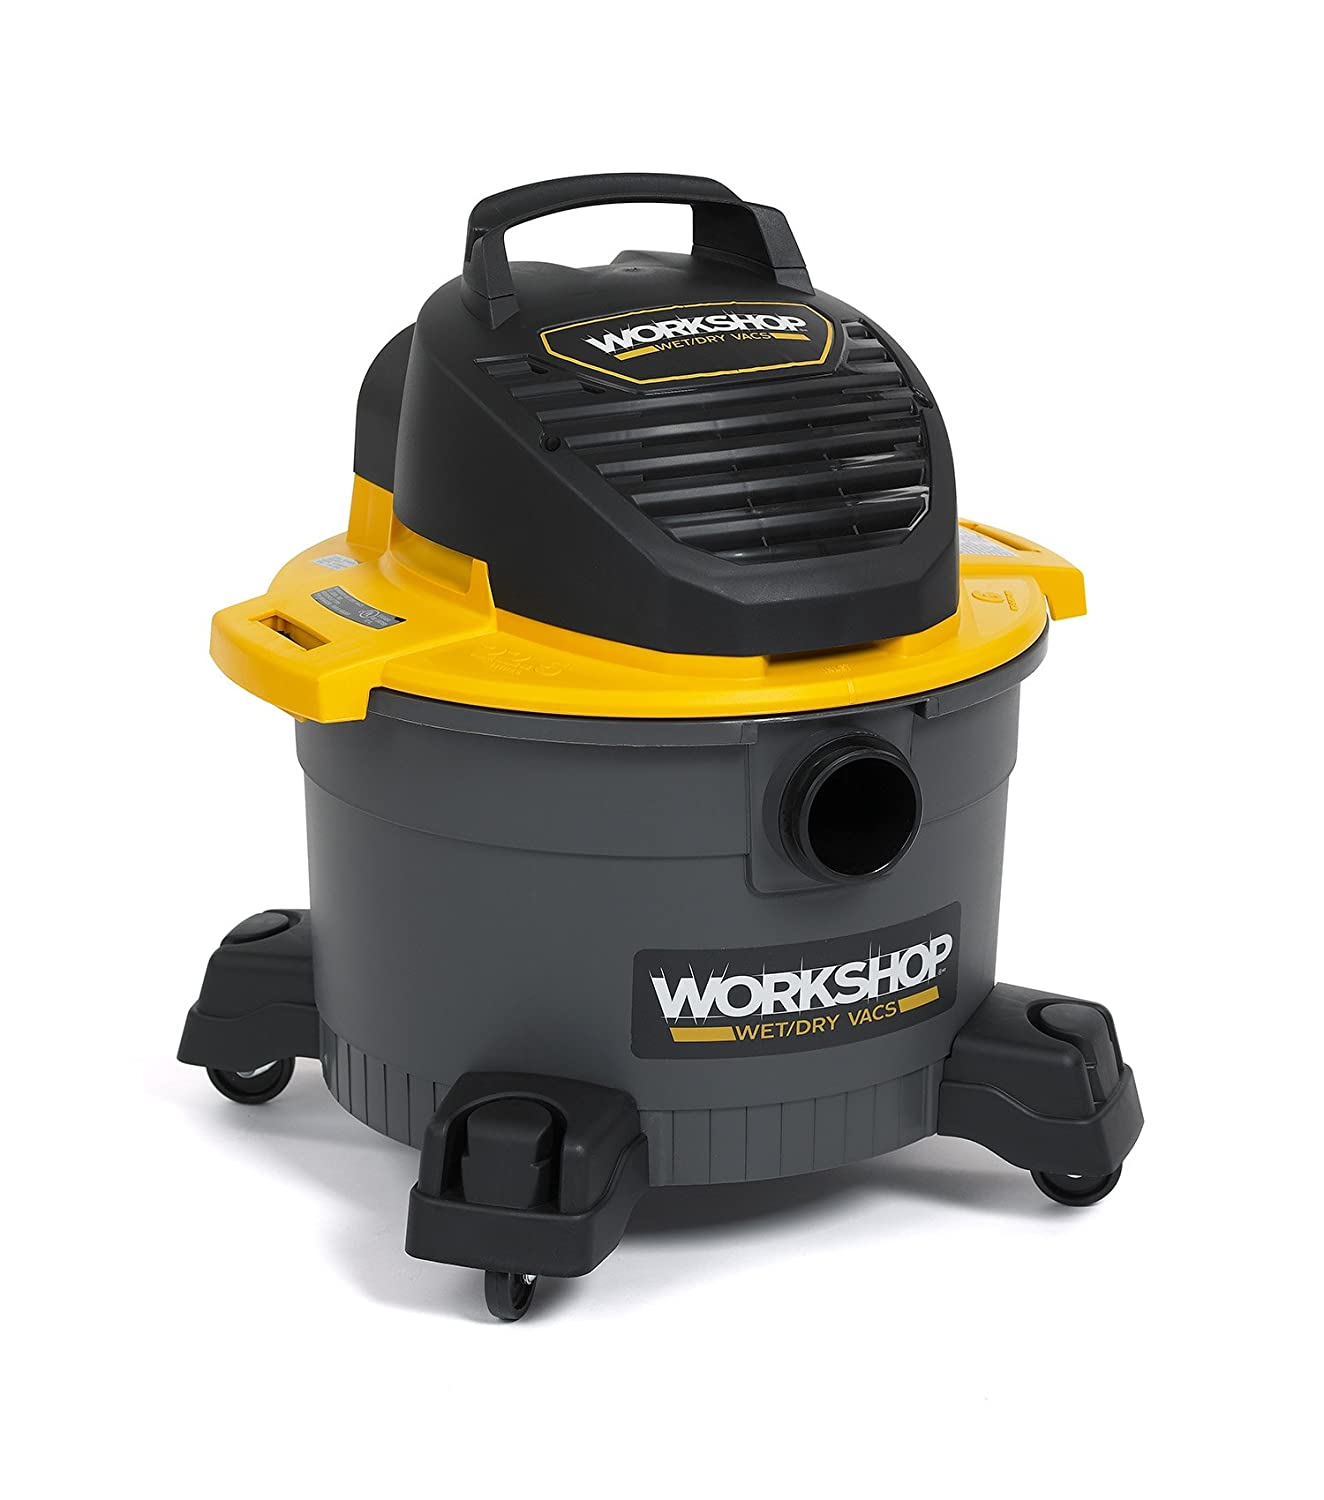 WORKSHOP Wet Dry Vac WS0610VA General Purpose Wet Dry Vacuum Cleaner